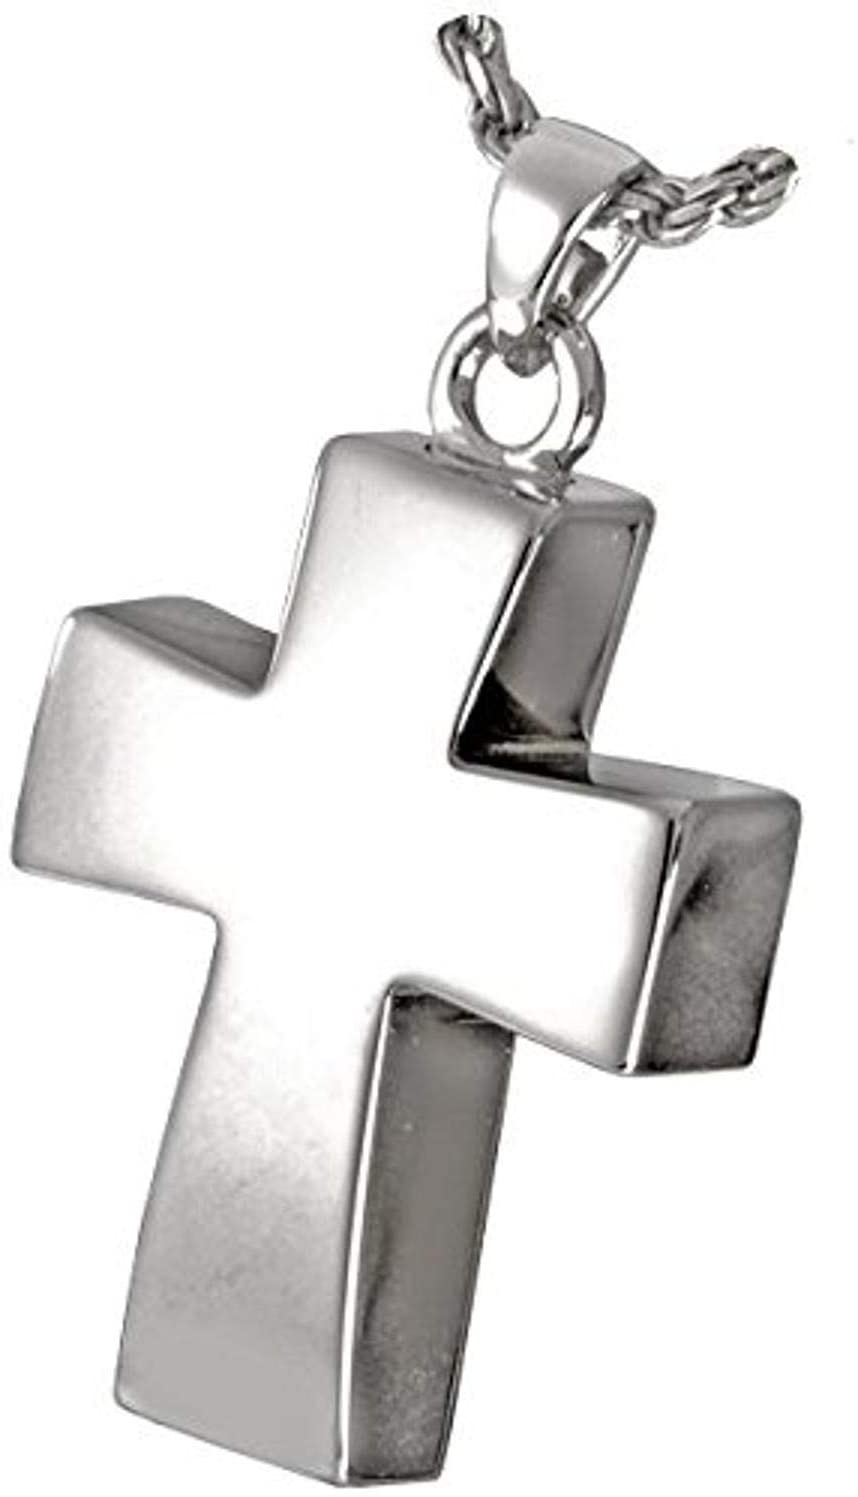 Memorial Gallery MG-3816gp Vaulted Cross 14K Gold/Sterling Silver Plating Cremation Pet Jewelry